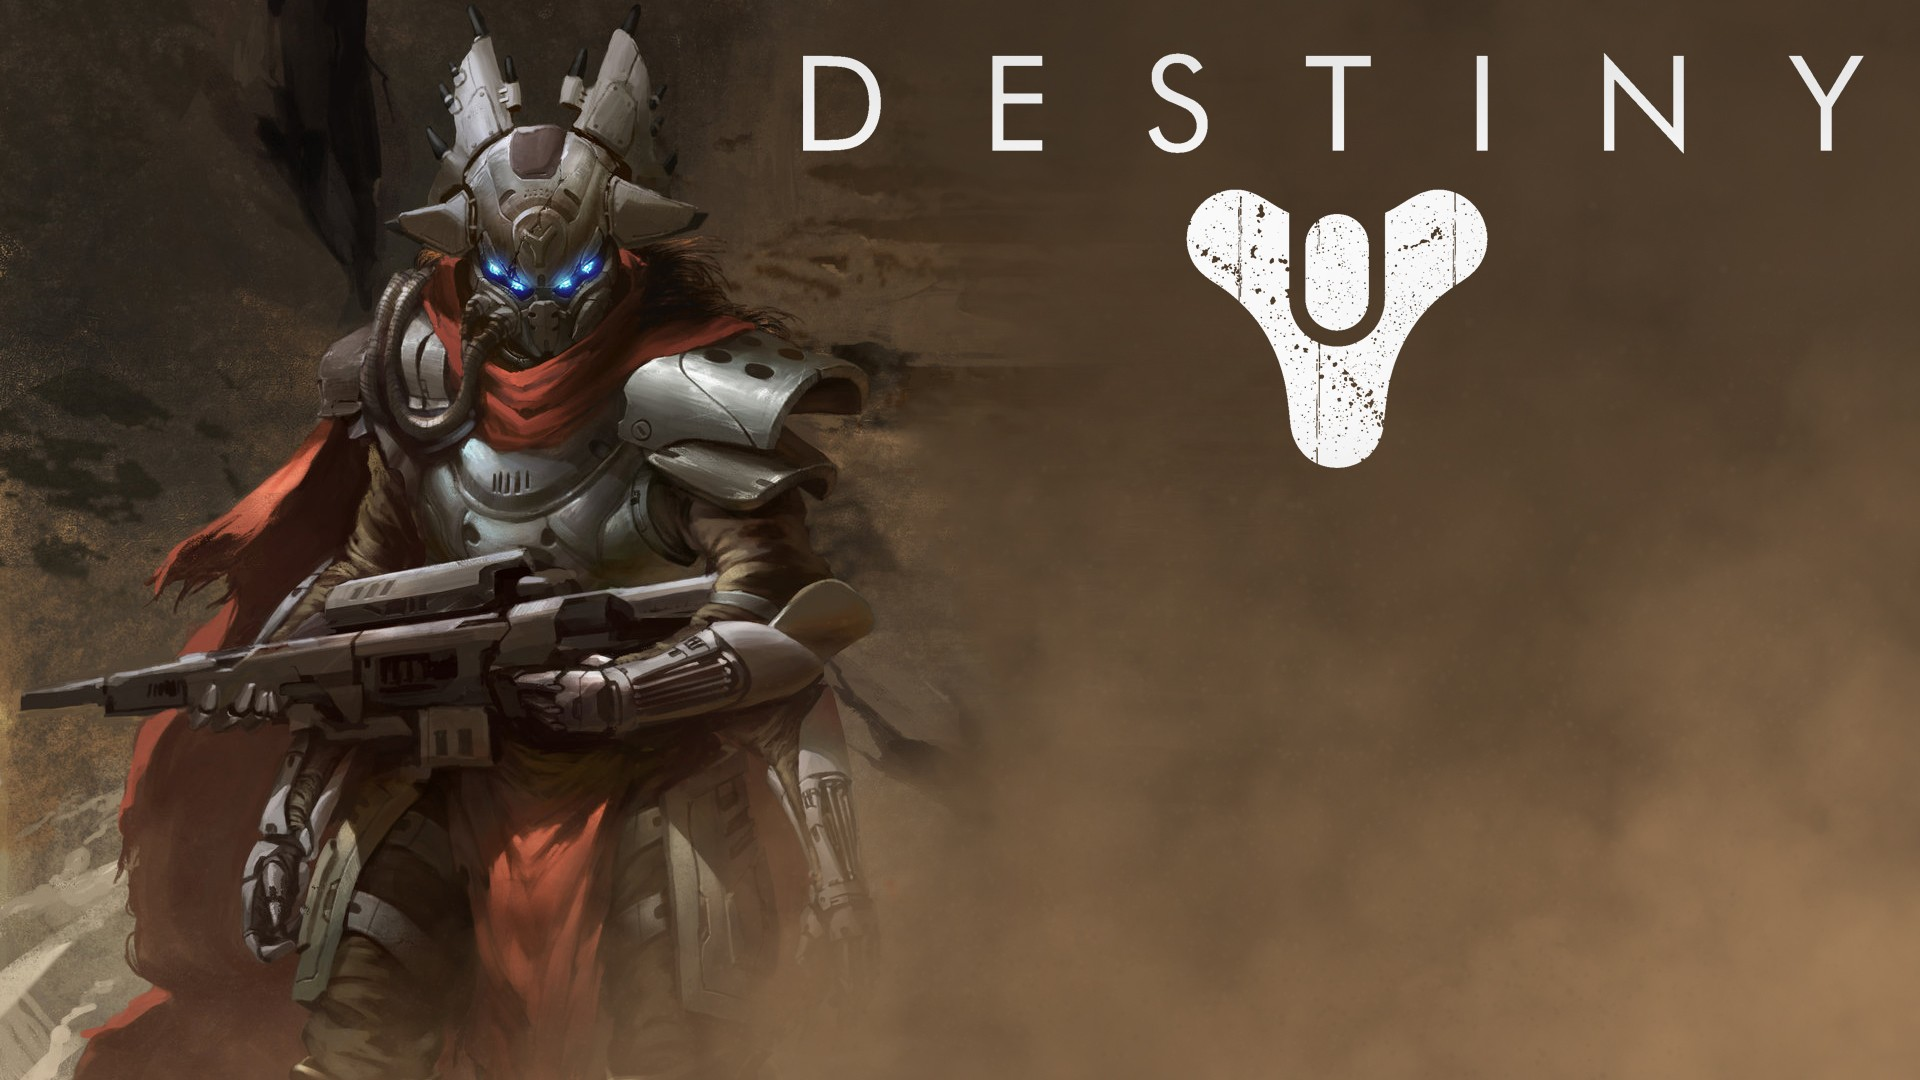 destiny wallpaper 25 - photo #14